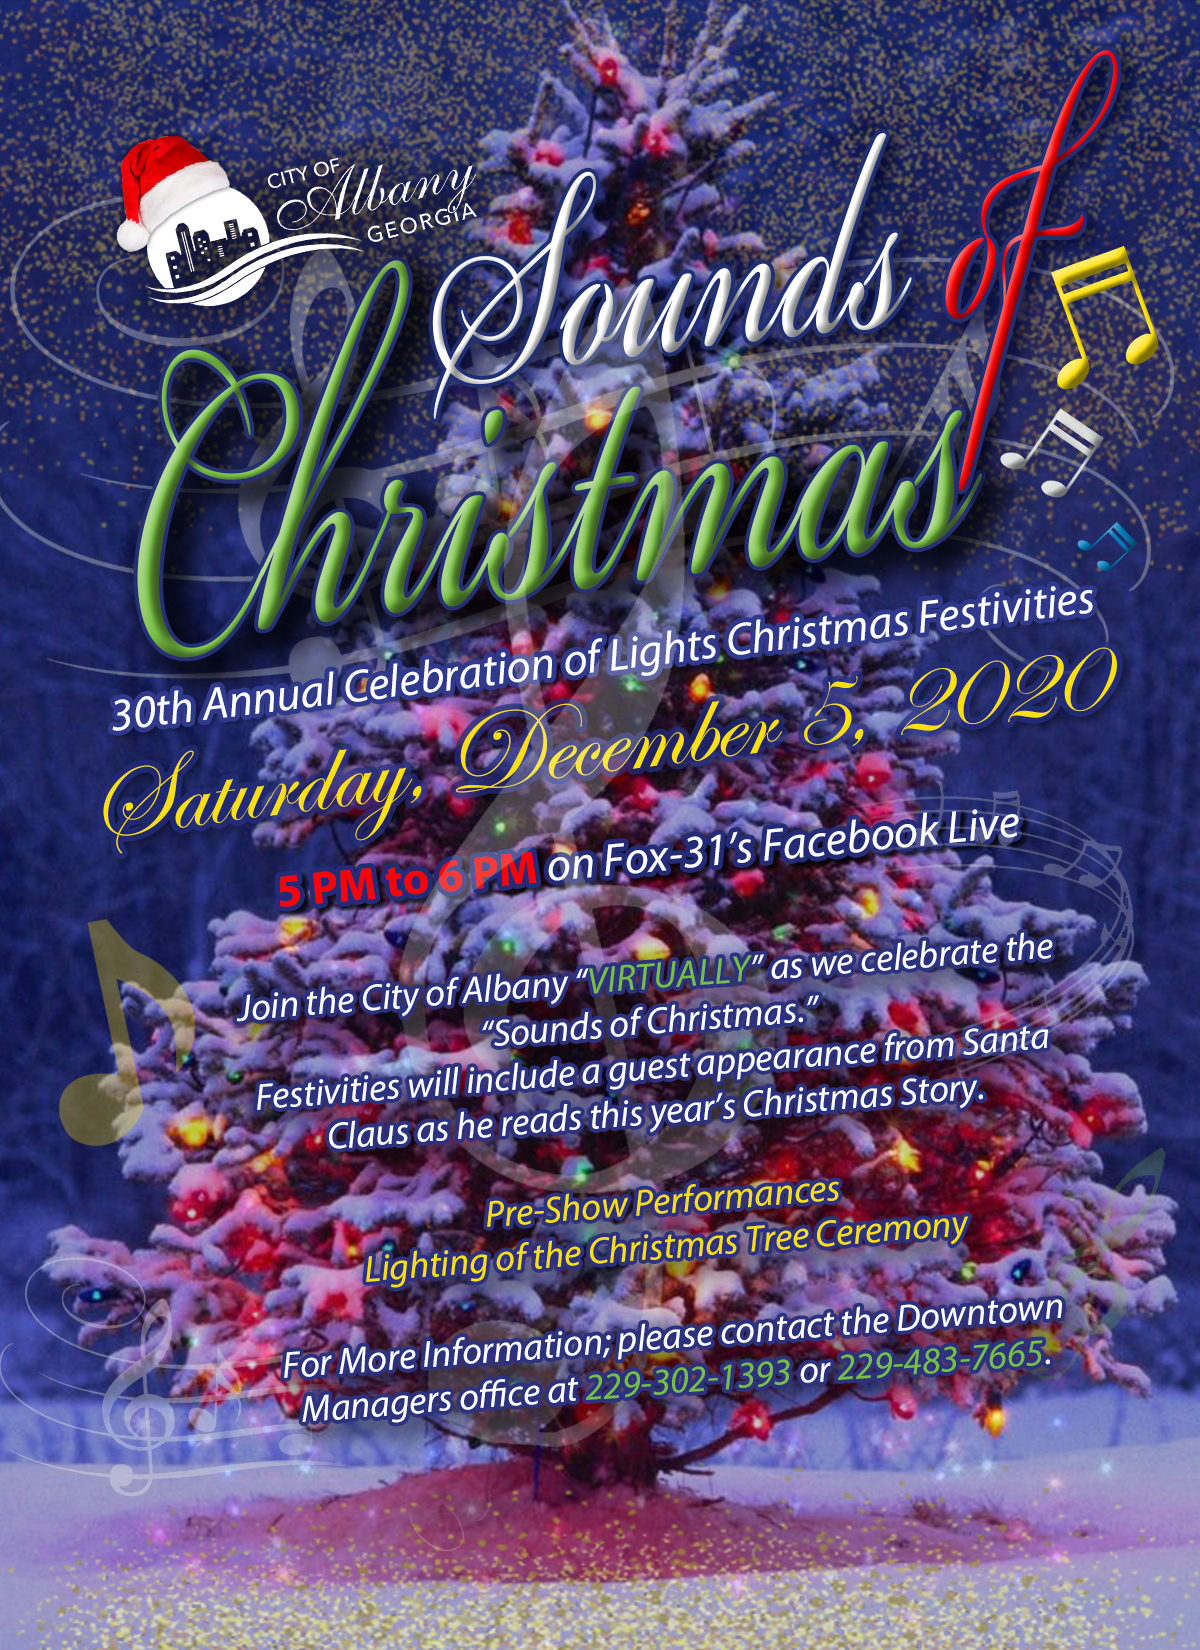 Virtual Sounds of Christmas Pre Show & Lighting of the Christmas Tree